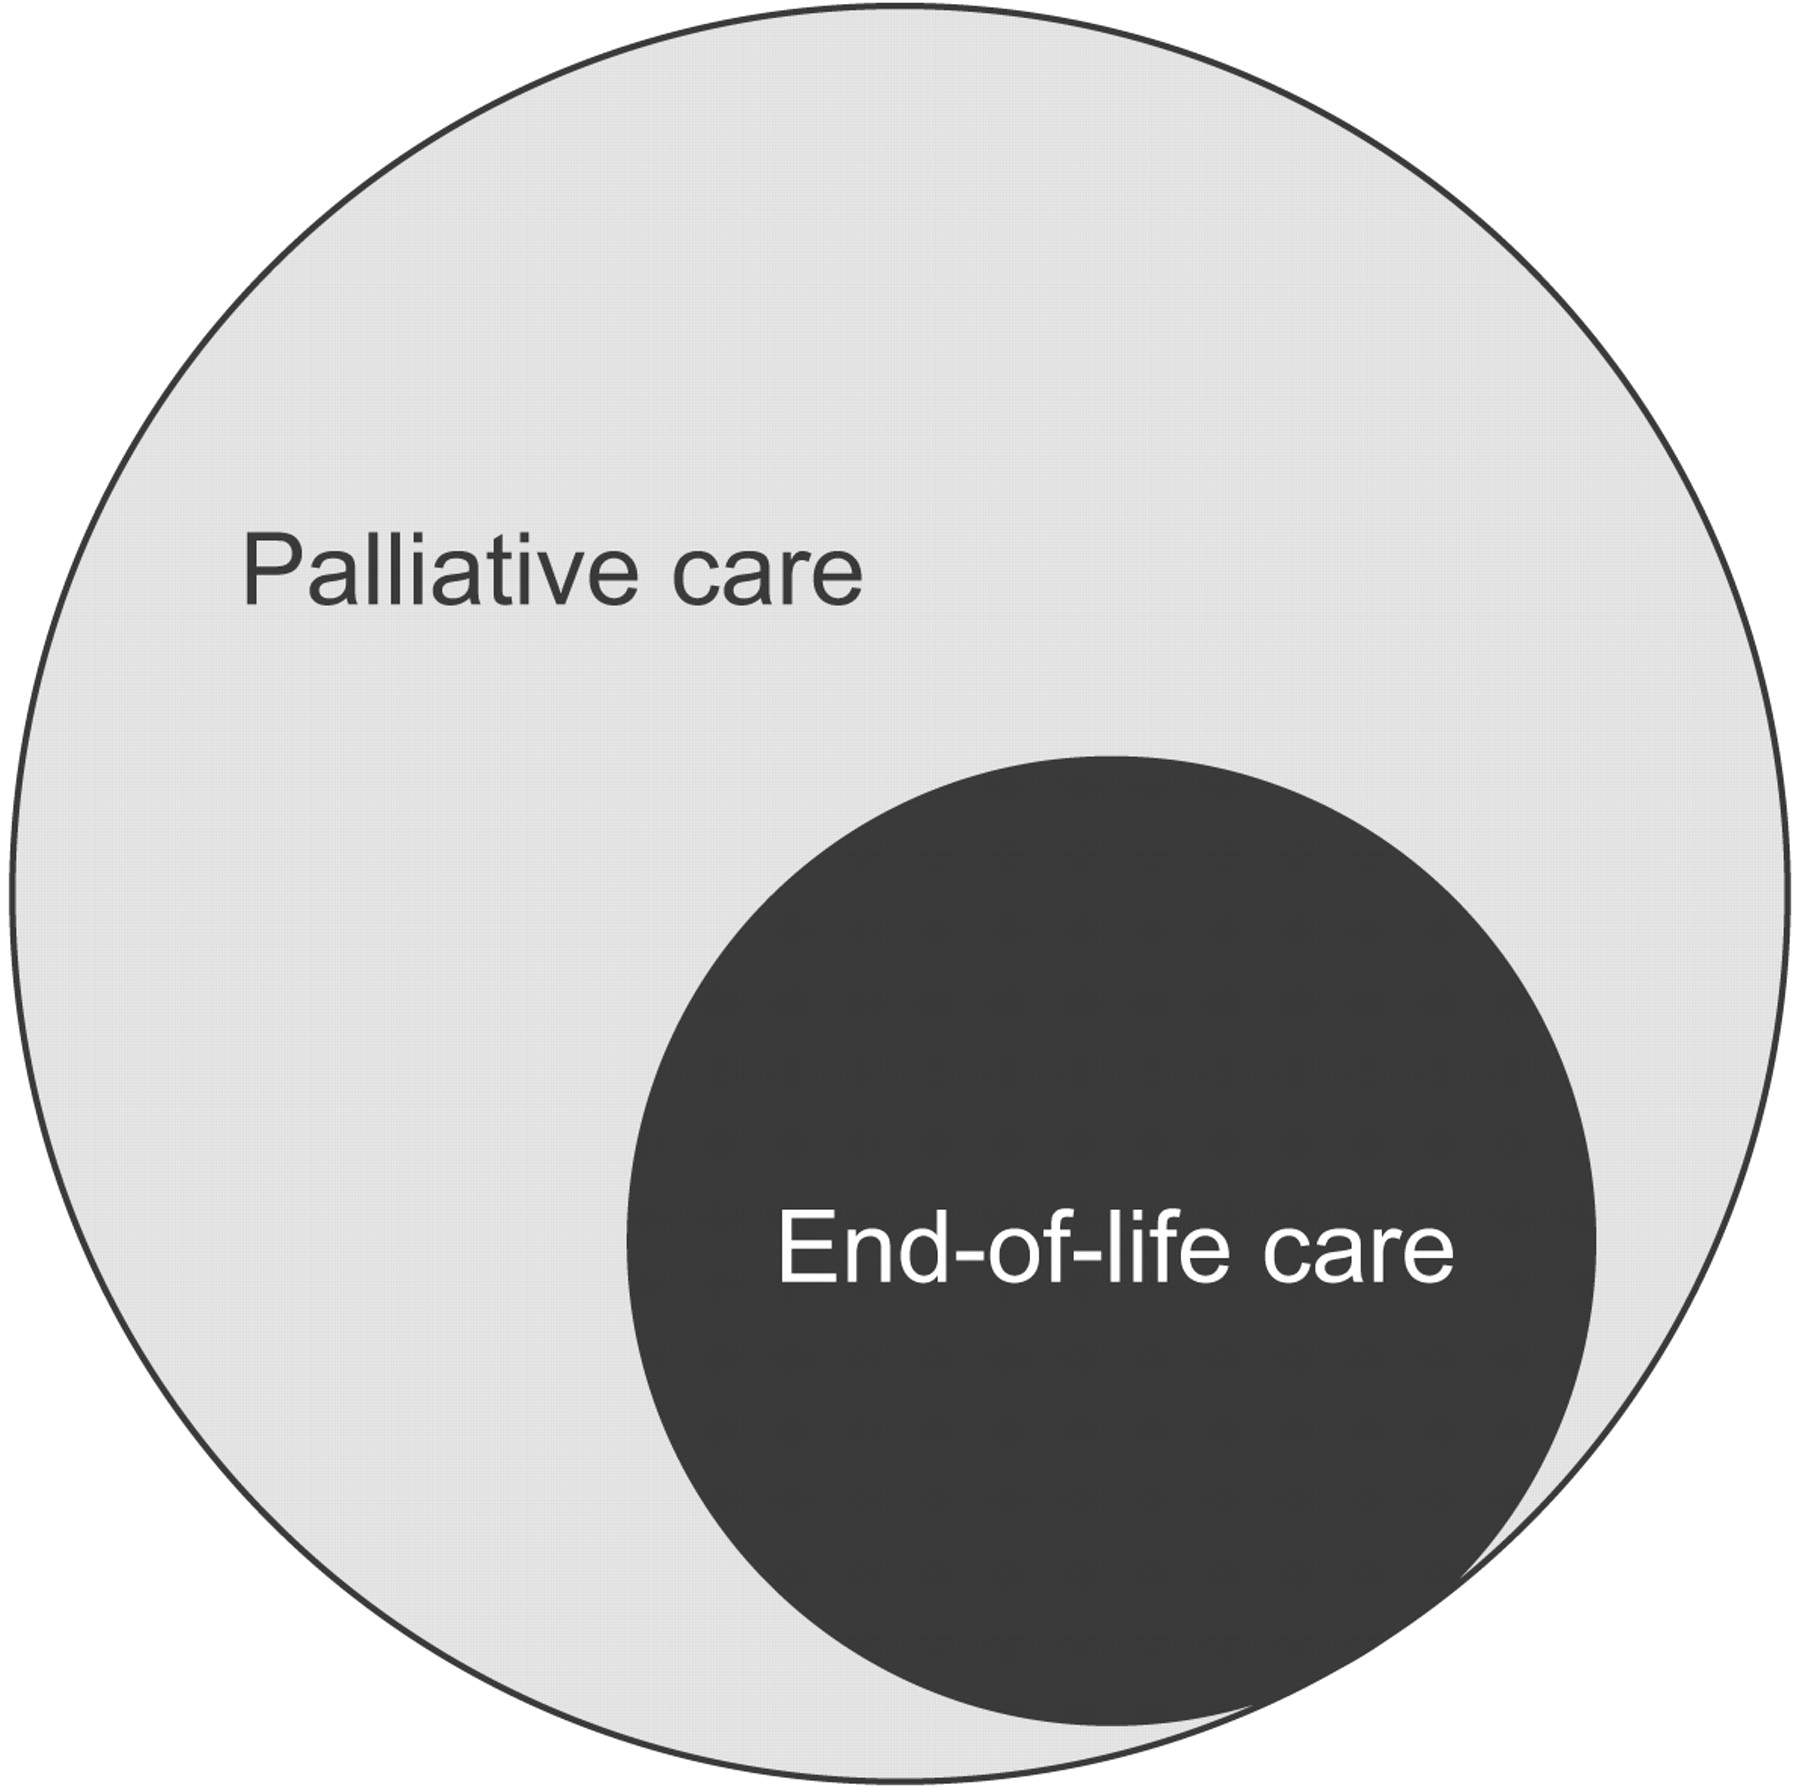 what does palliative care mean